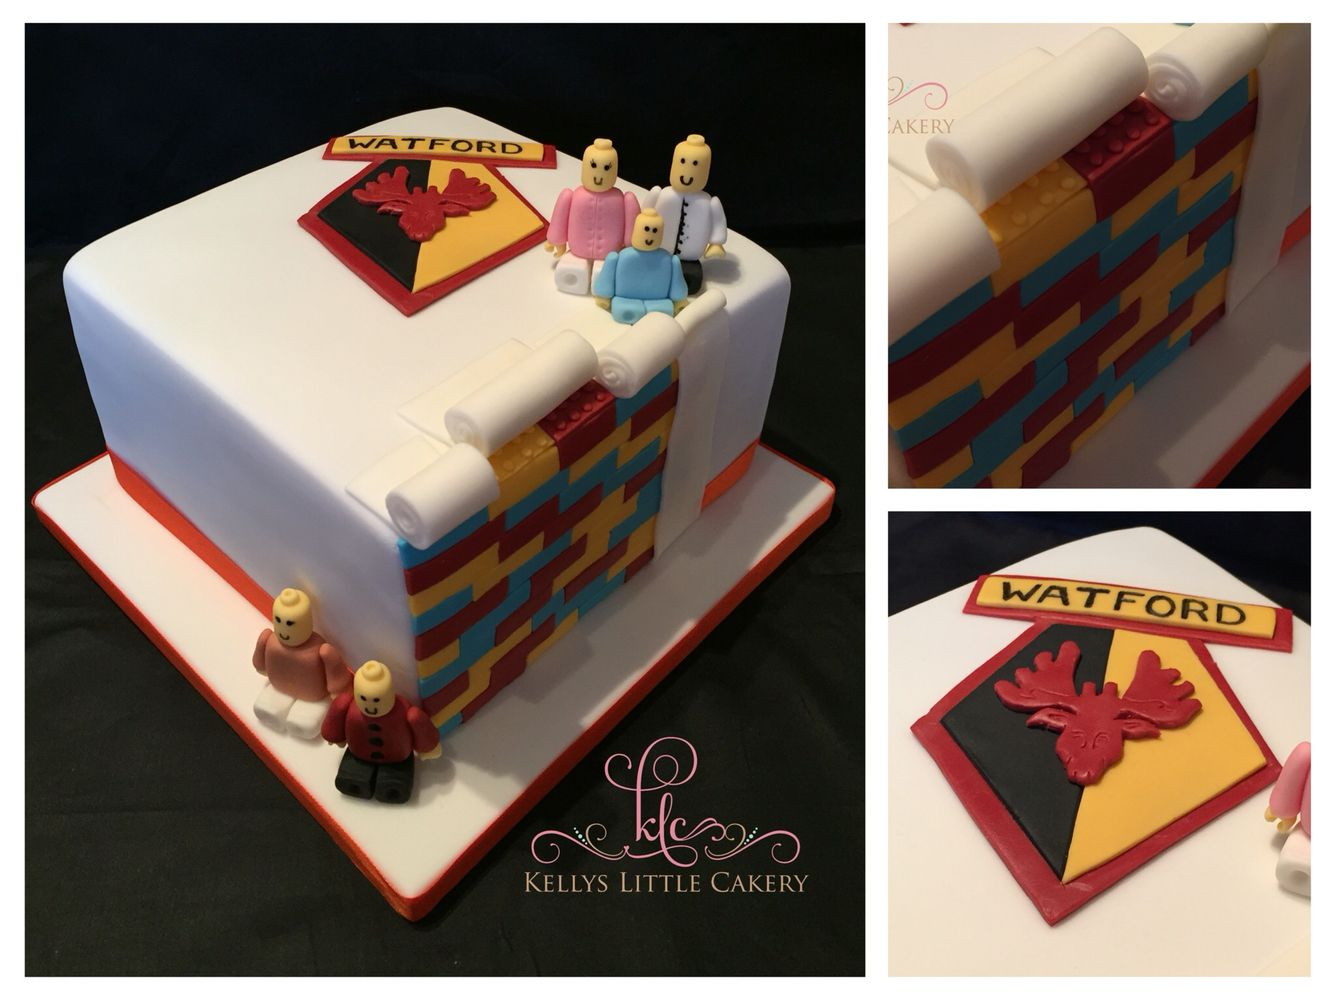 A combination of LEGO and Watford birthday cake! 😂